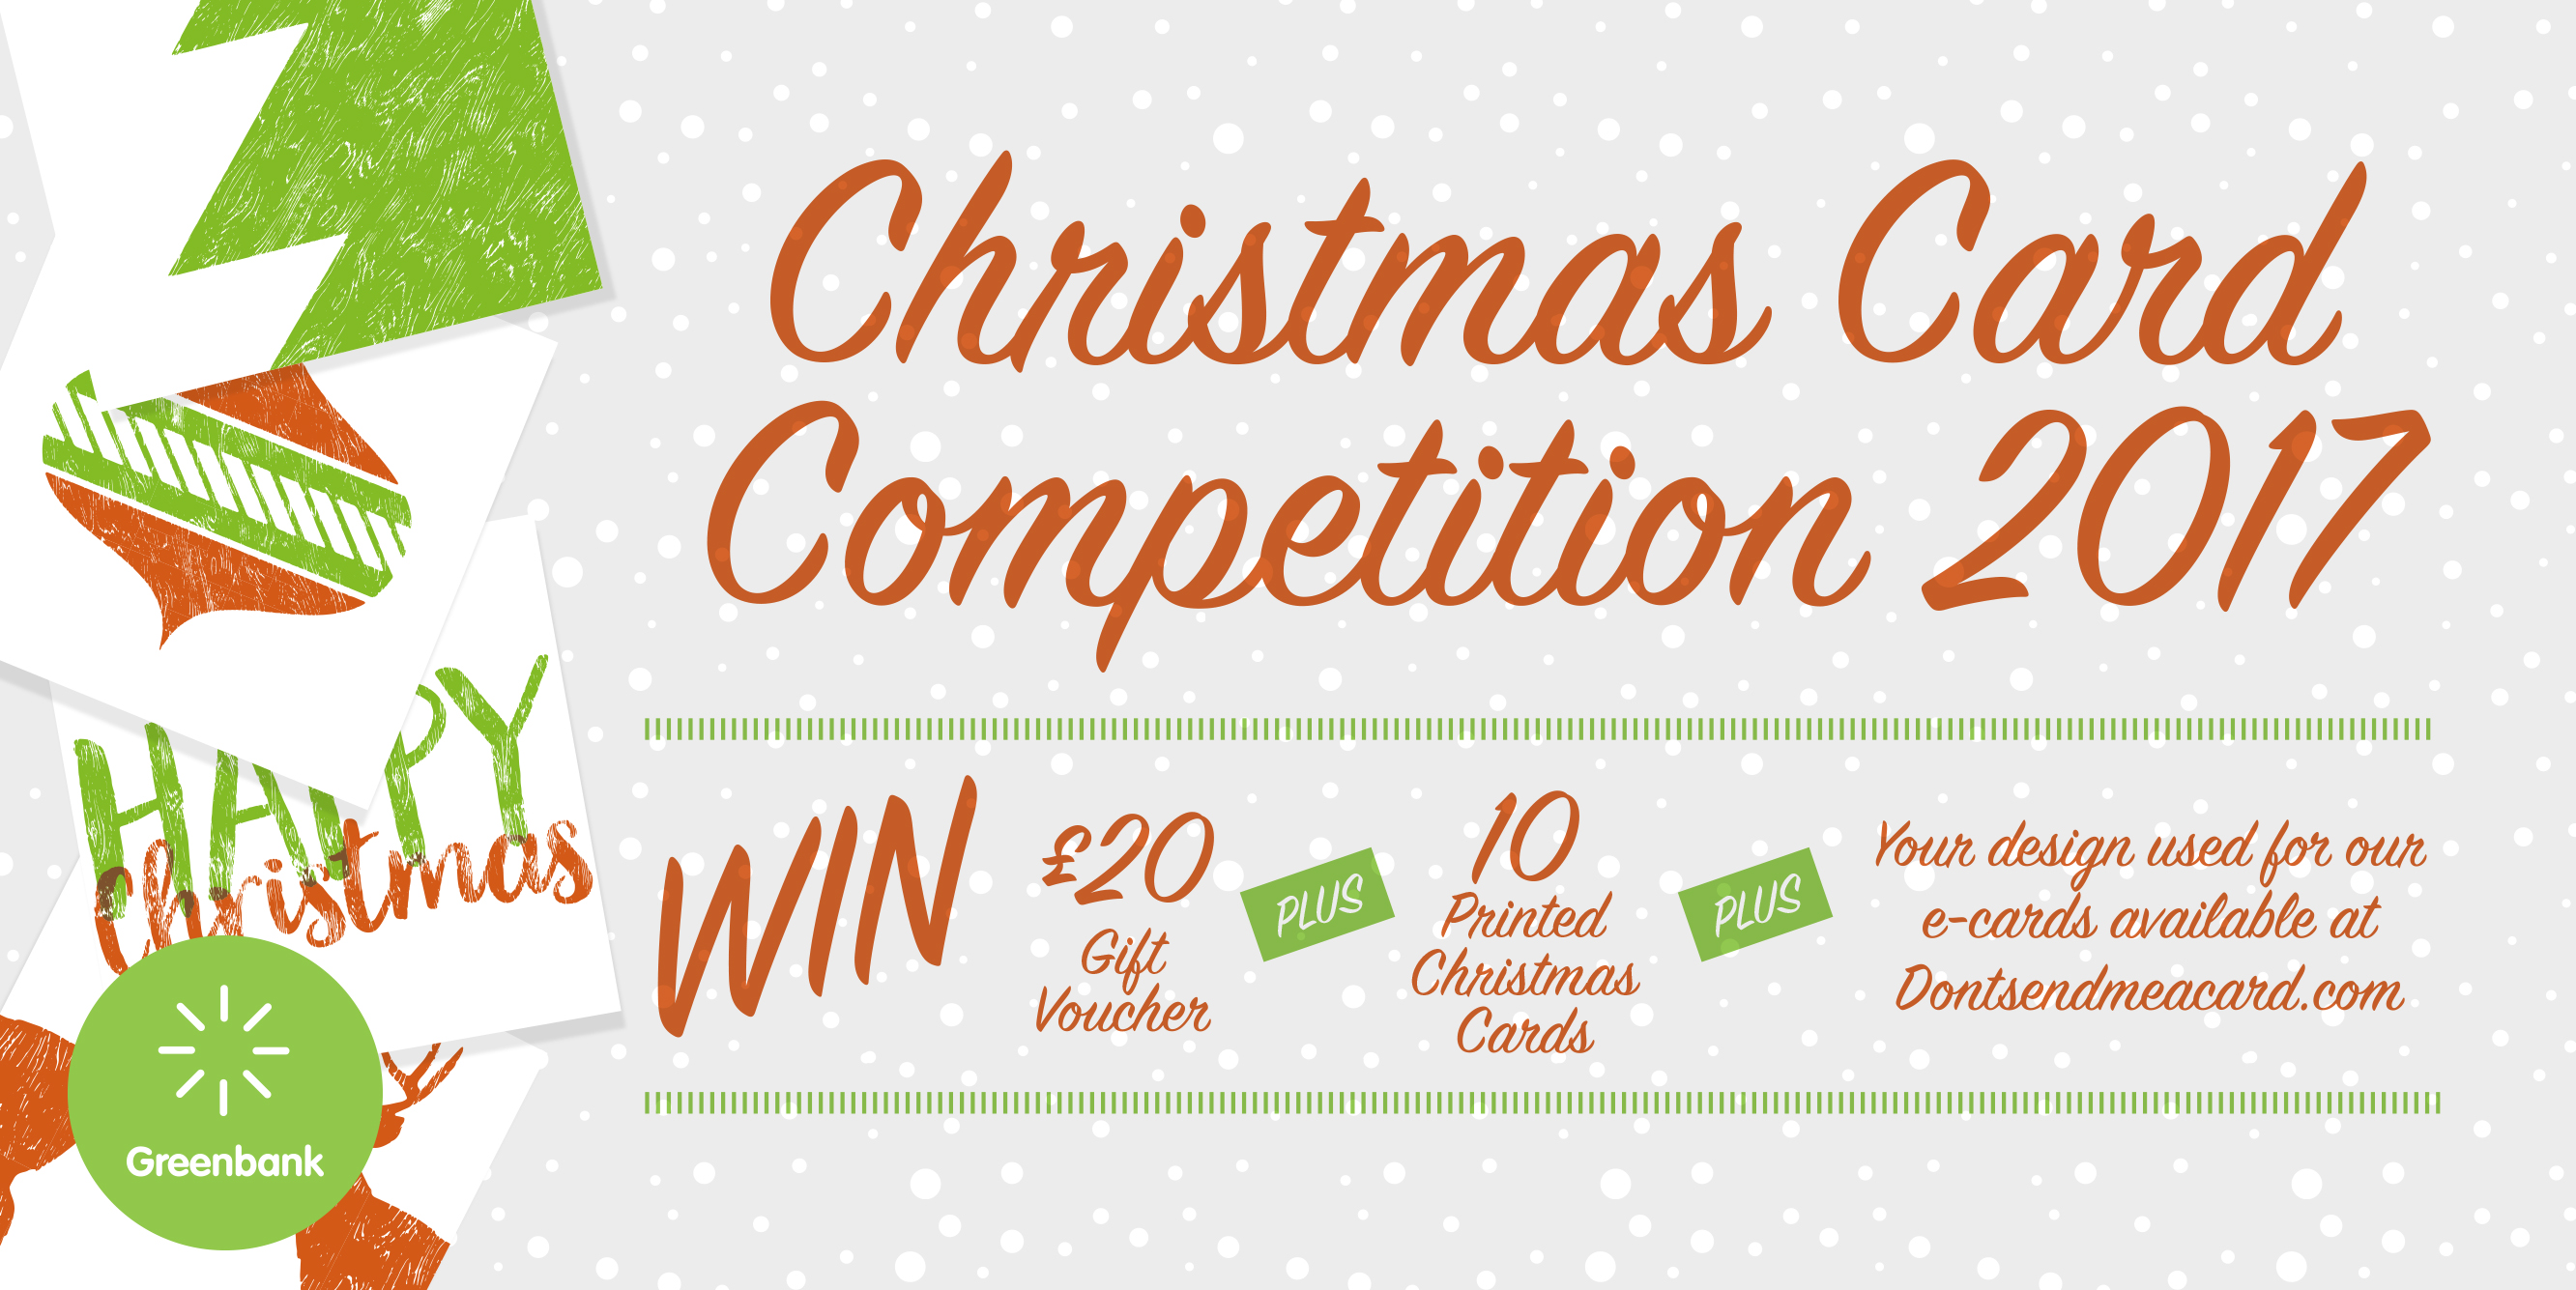 Delightful Enter Our Competition To Design A Christmas Card For Greenbank